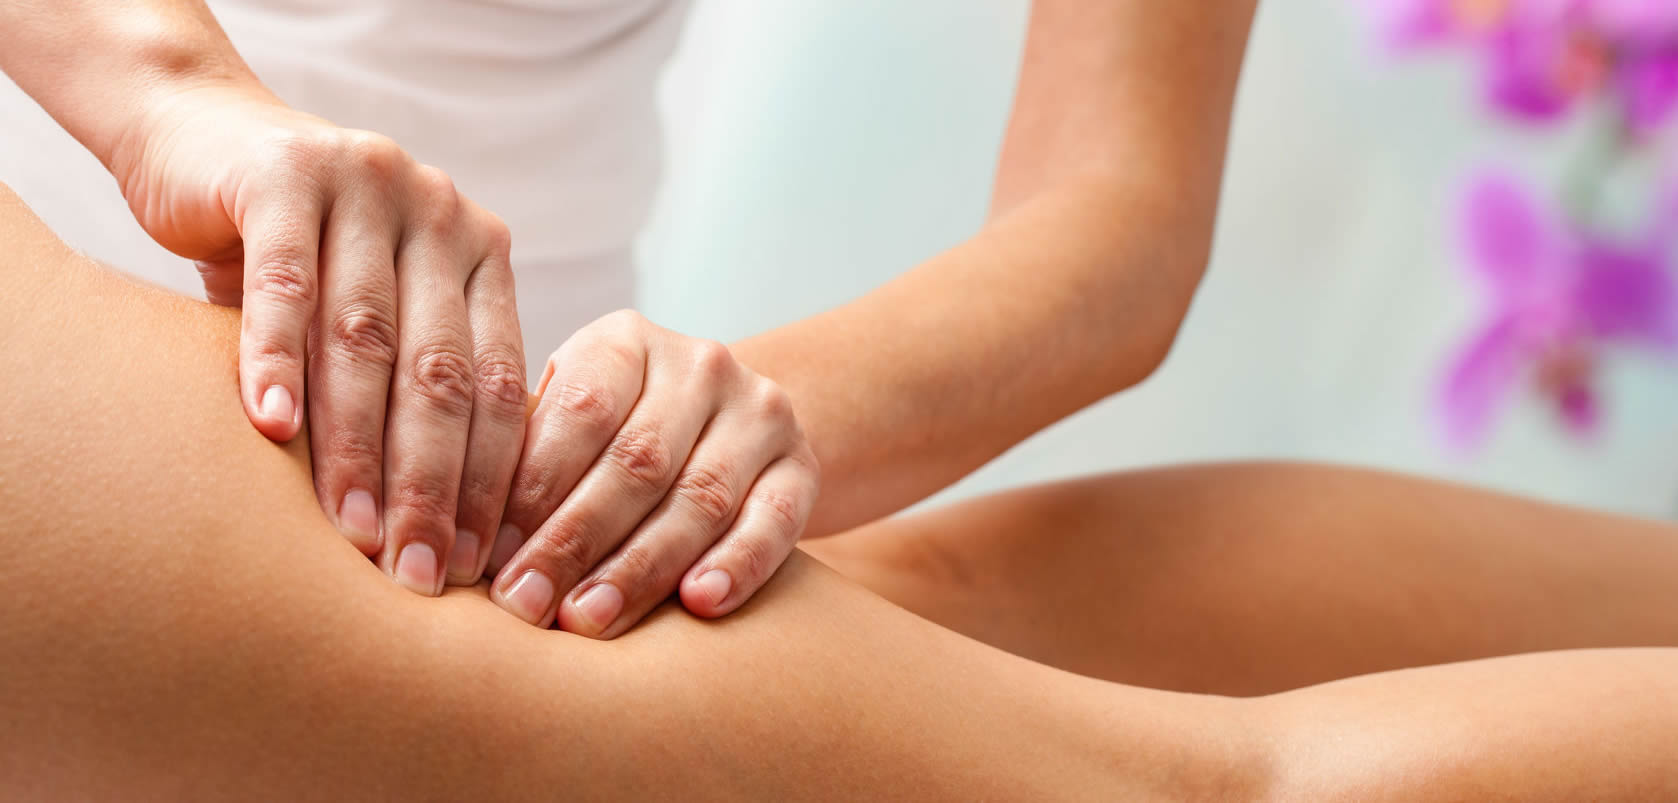 Fibrous Cellulite: Palpating and rolling is the adequate Anti-cellulite massage technique